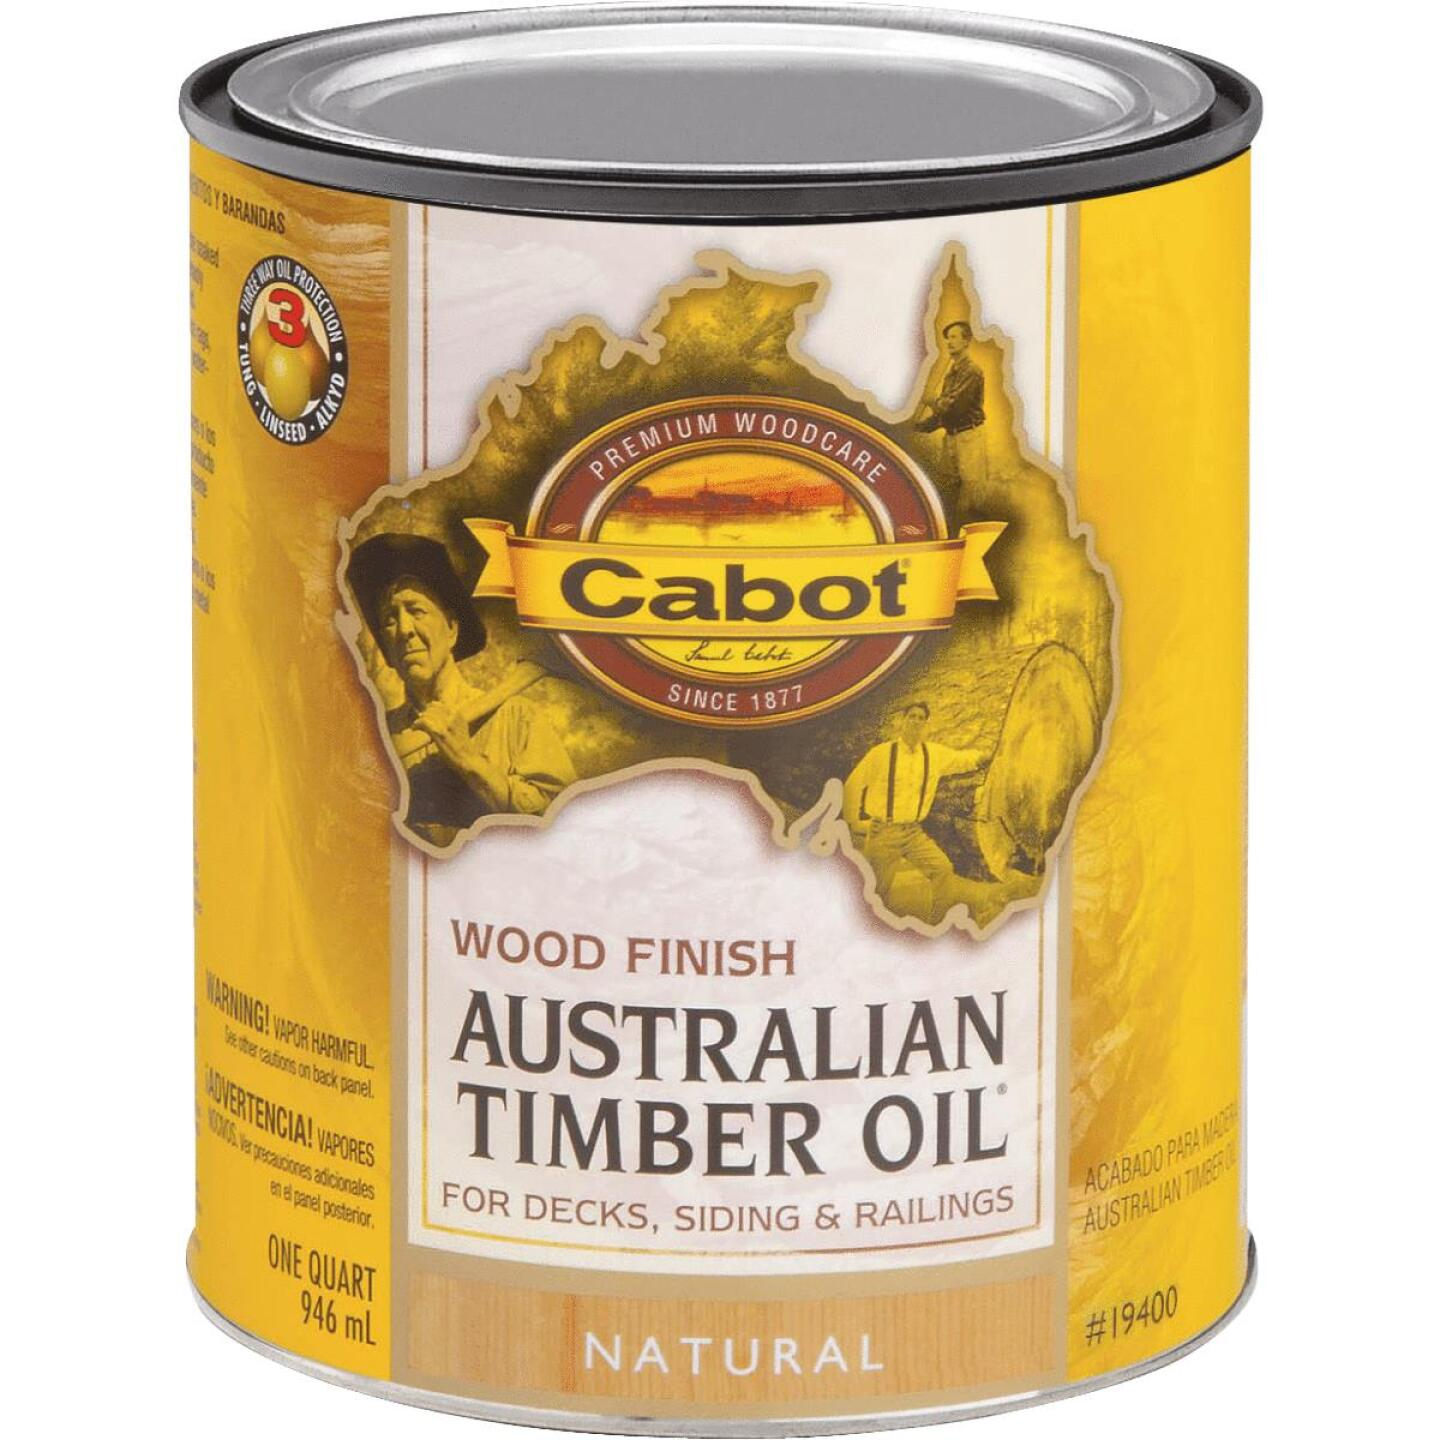 Cabot Australian Timber Oil Water Reducible Translucent Exterior Oil Finish, Natural, 1 Qt. Image 1